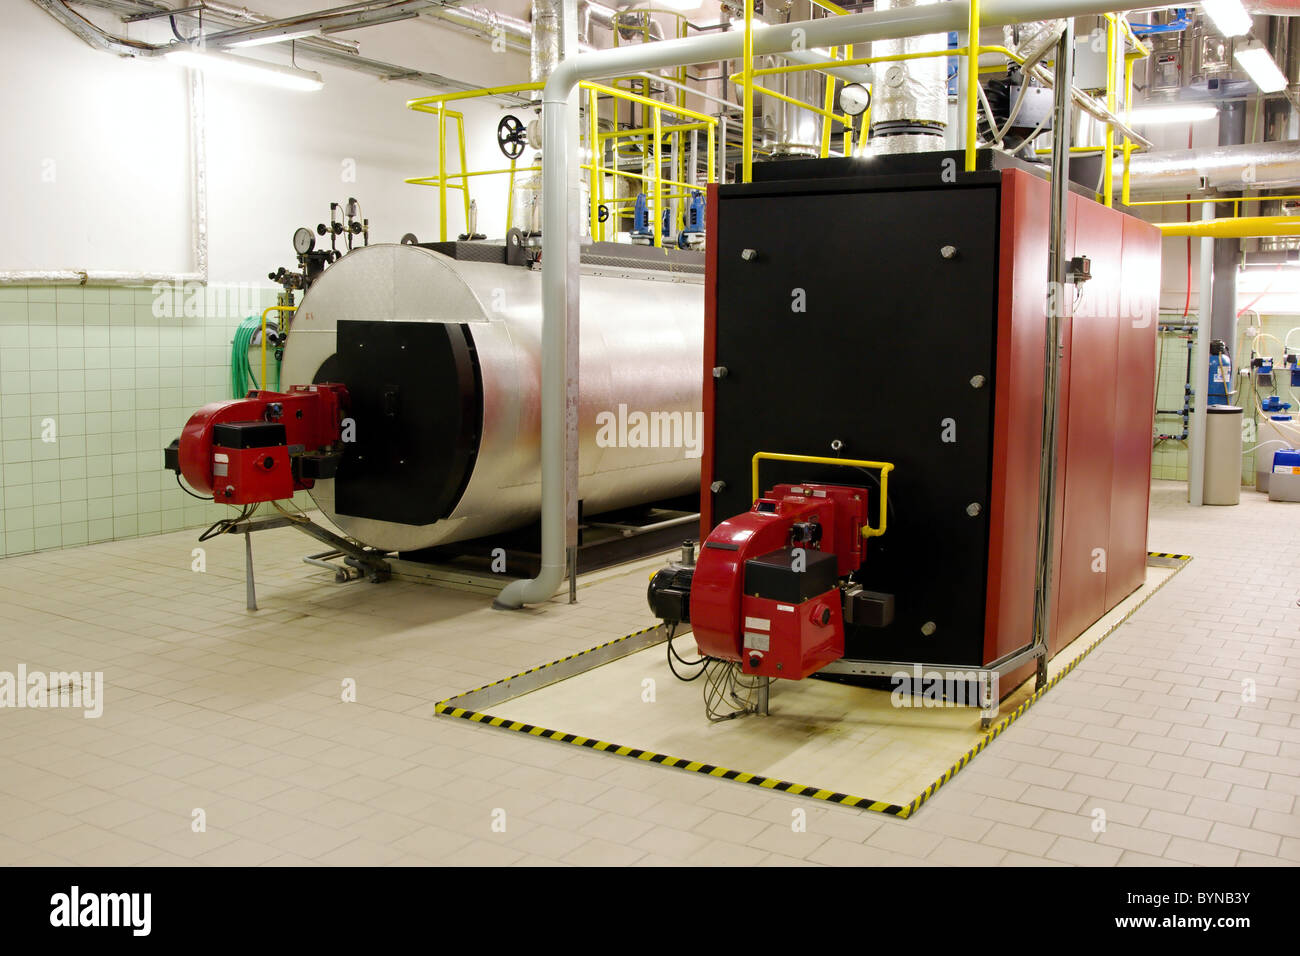 Gas boilers in gas boiler room for steam production Stock Photo ...